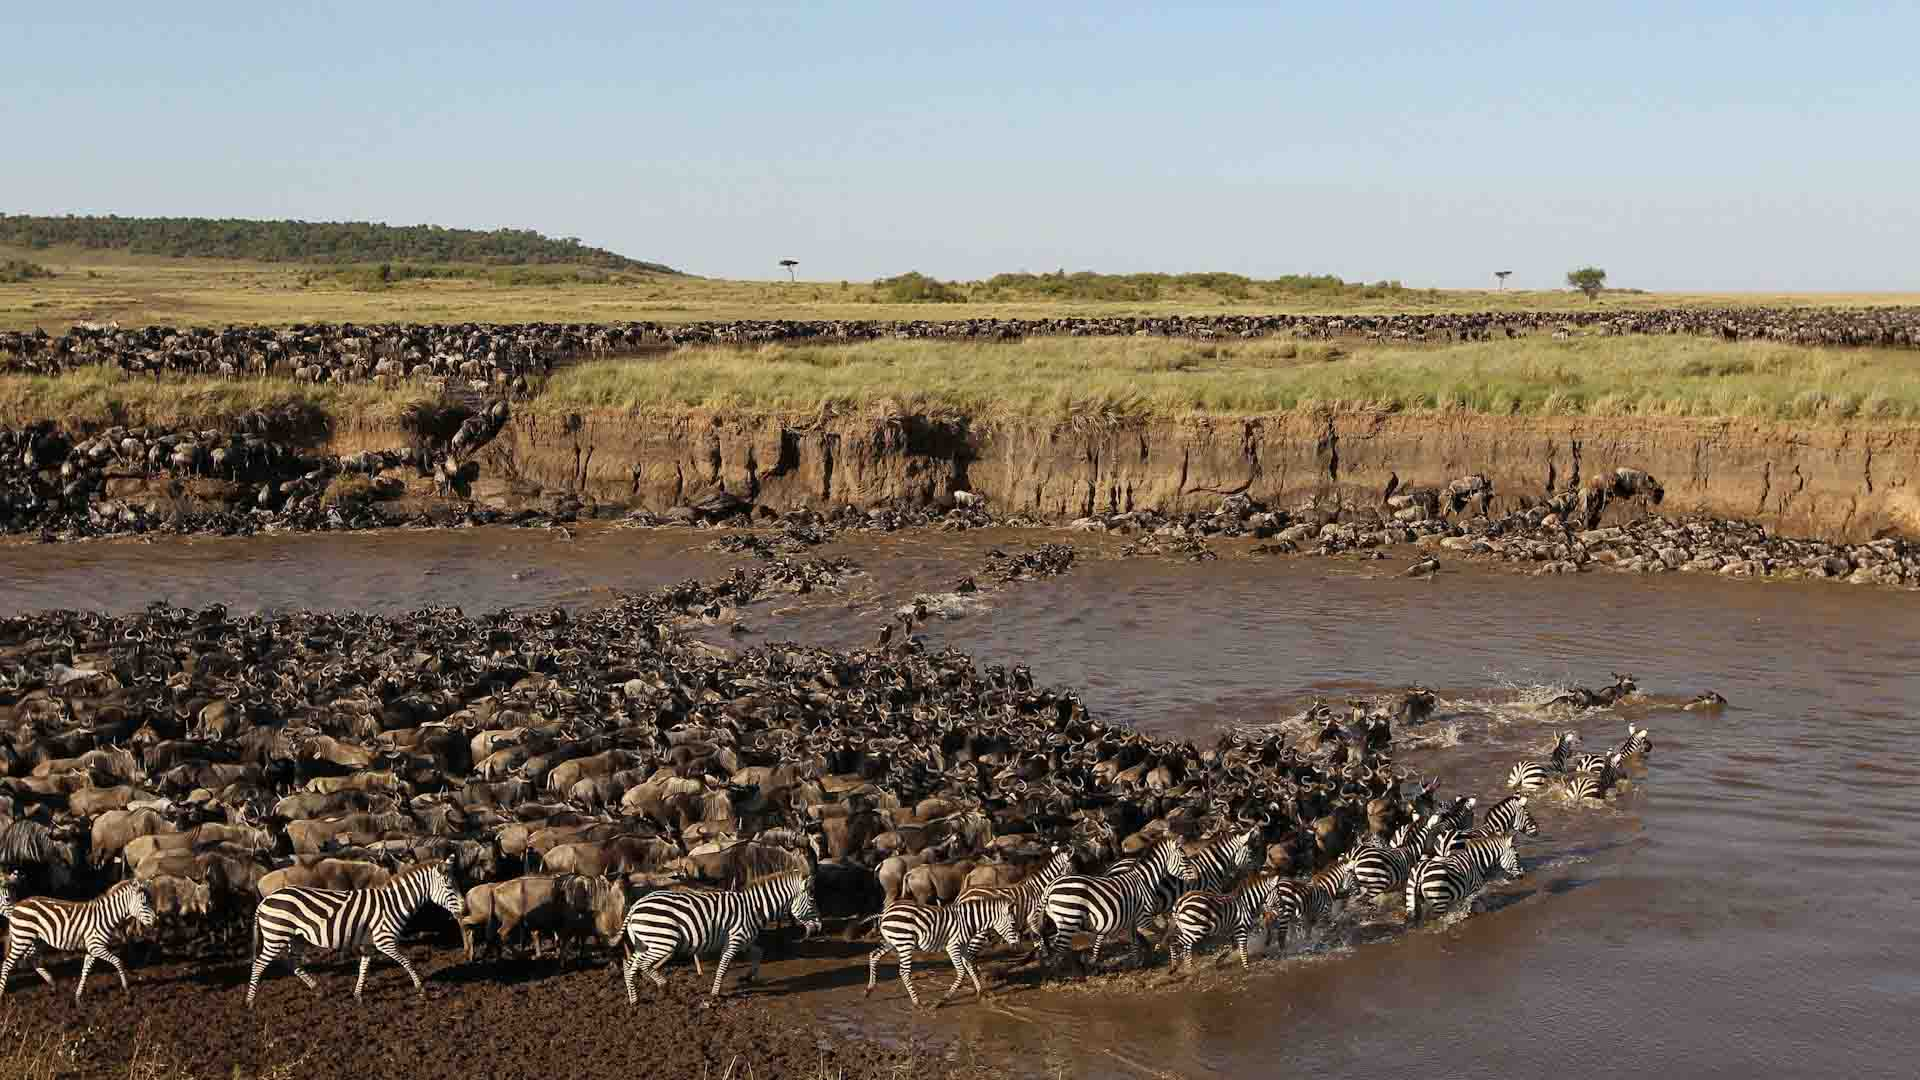 serengeti-national-park-wildebeest-migration-safari-deoadventure